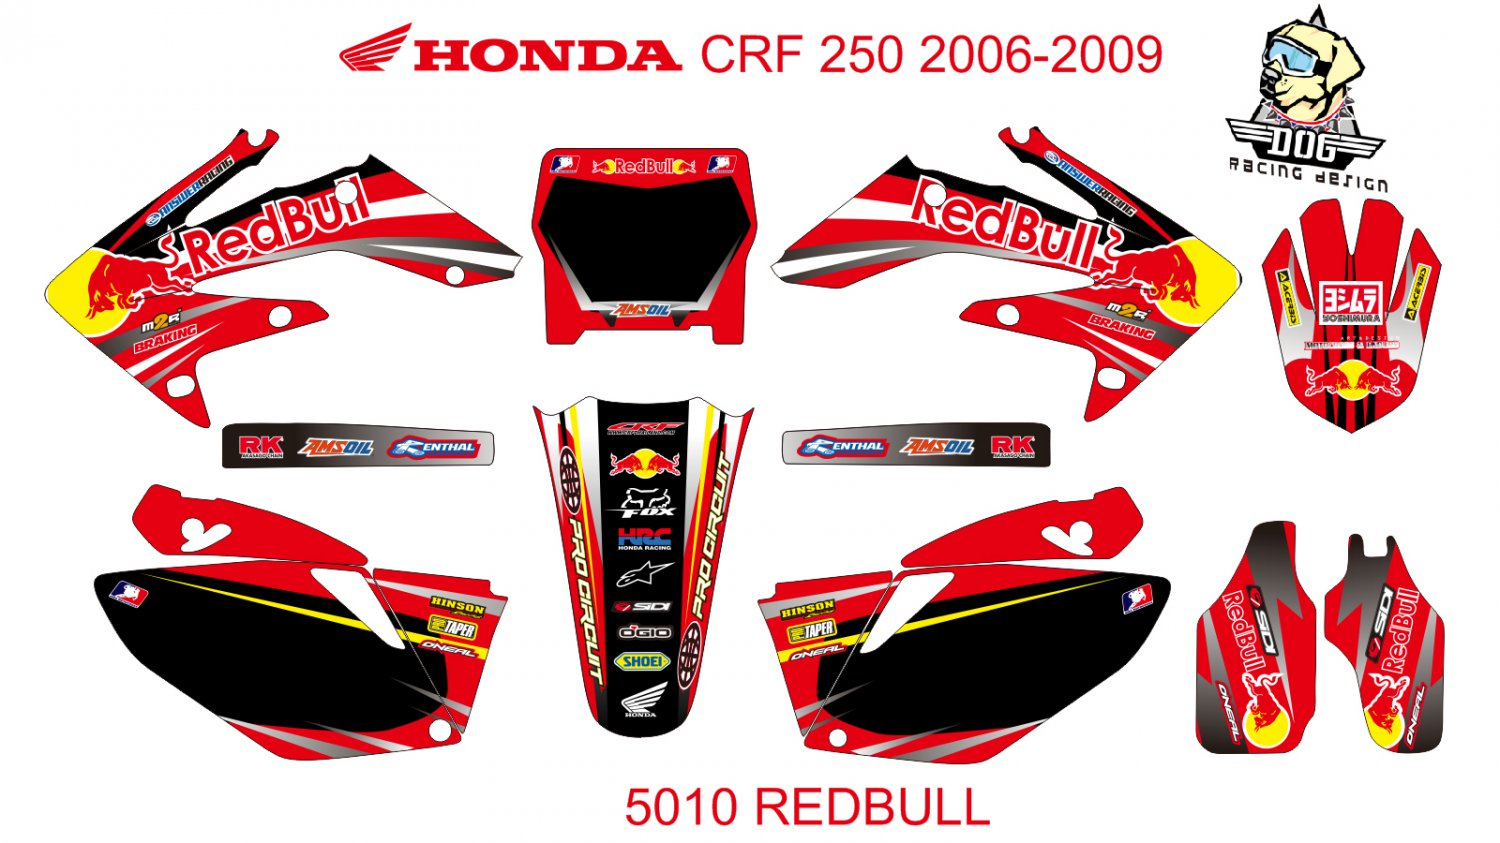 HONDA CRF 250 2006-2009 GRAPHIC DECAL KIT CODE.5010